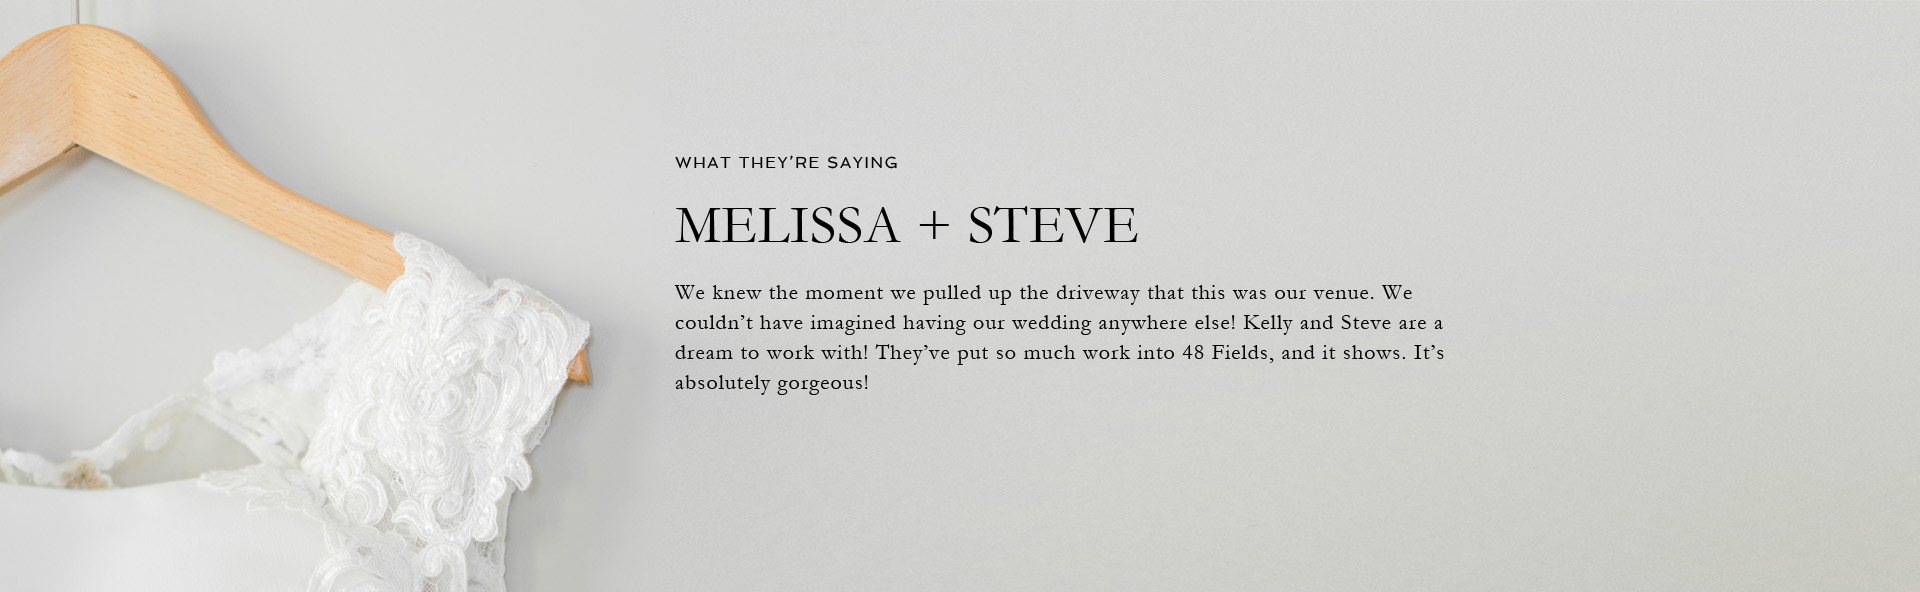 real-wedding-reviews-melissa-steve